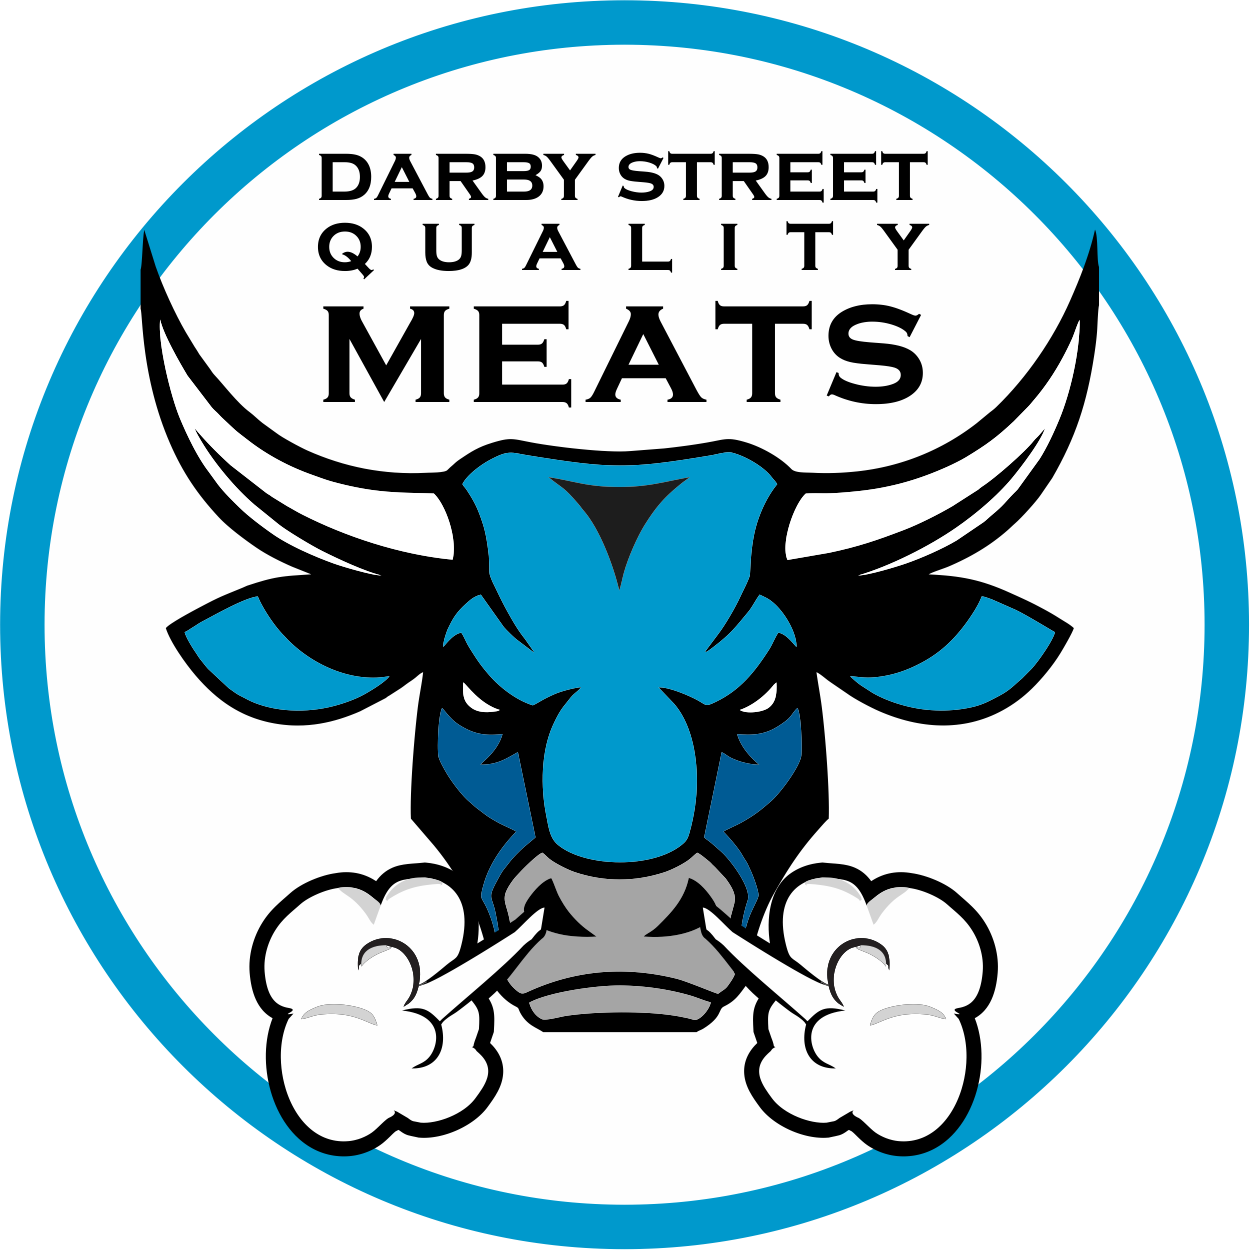 darby street quality meats logoname in circle.png